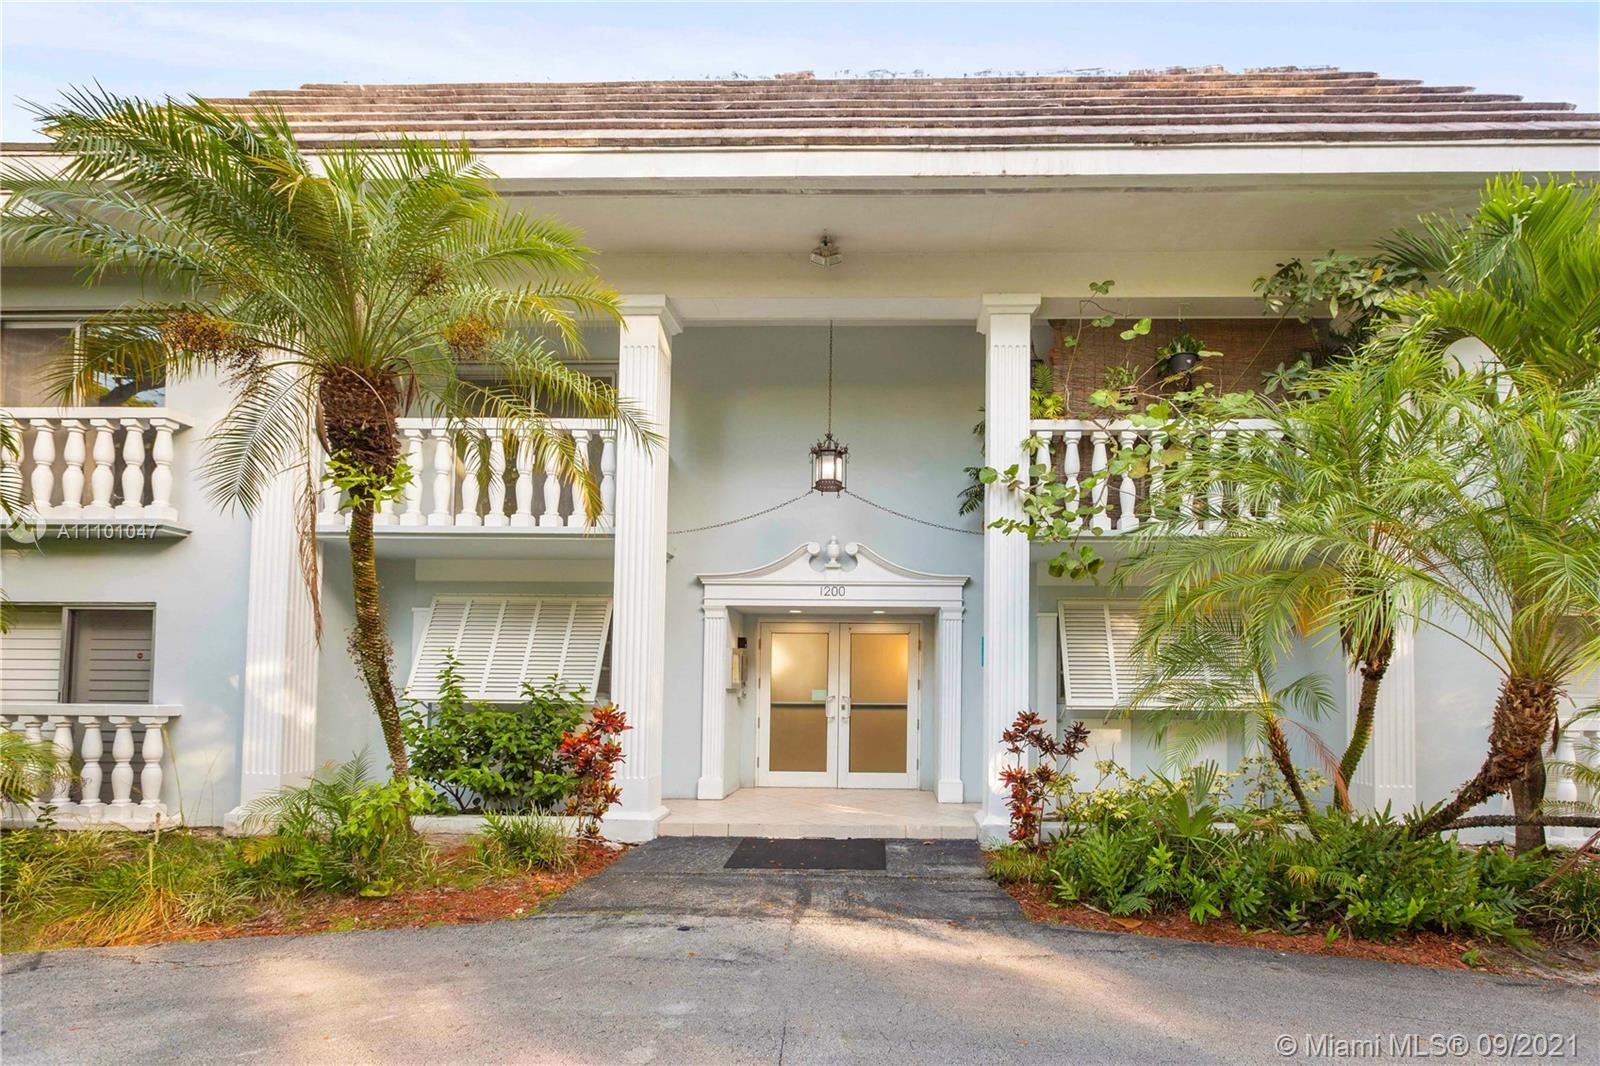 Photo of 1200 Mariposa Ave #D201, Coral Gables, FL 33146 (MLS # A11101047)